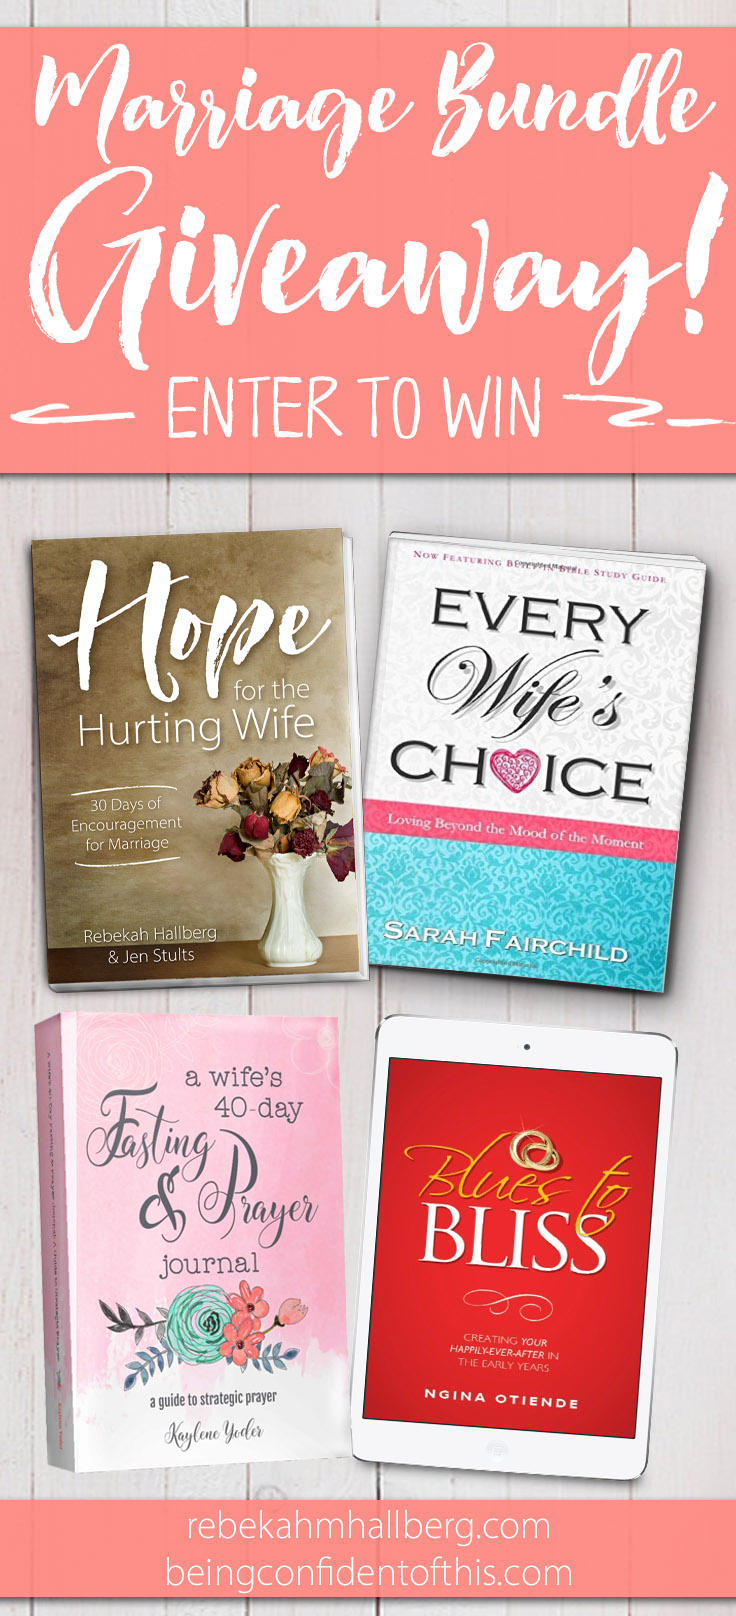 We're celebrating the launch of our new book Hope for the Hurting Wife by giving away a bundle of marriage books! Enter for your chance to win these four books written for wives! marriage books|Christian wife|godly wife|marriage growth|faith|bible studies|devotionals|encouragement for marriage|hope for the  hurting wife|prayer journal